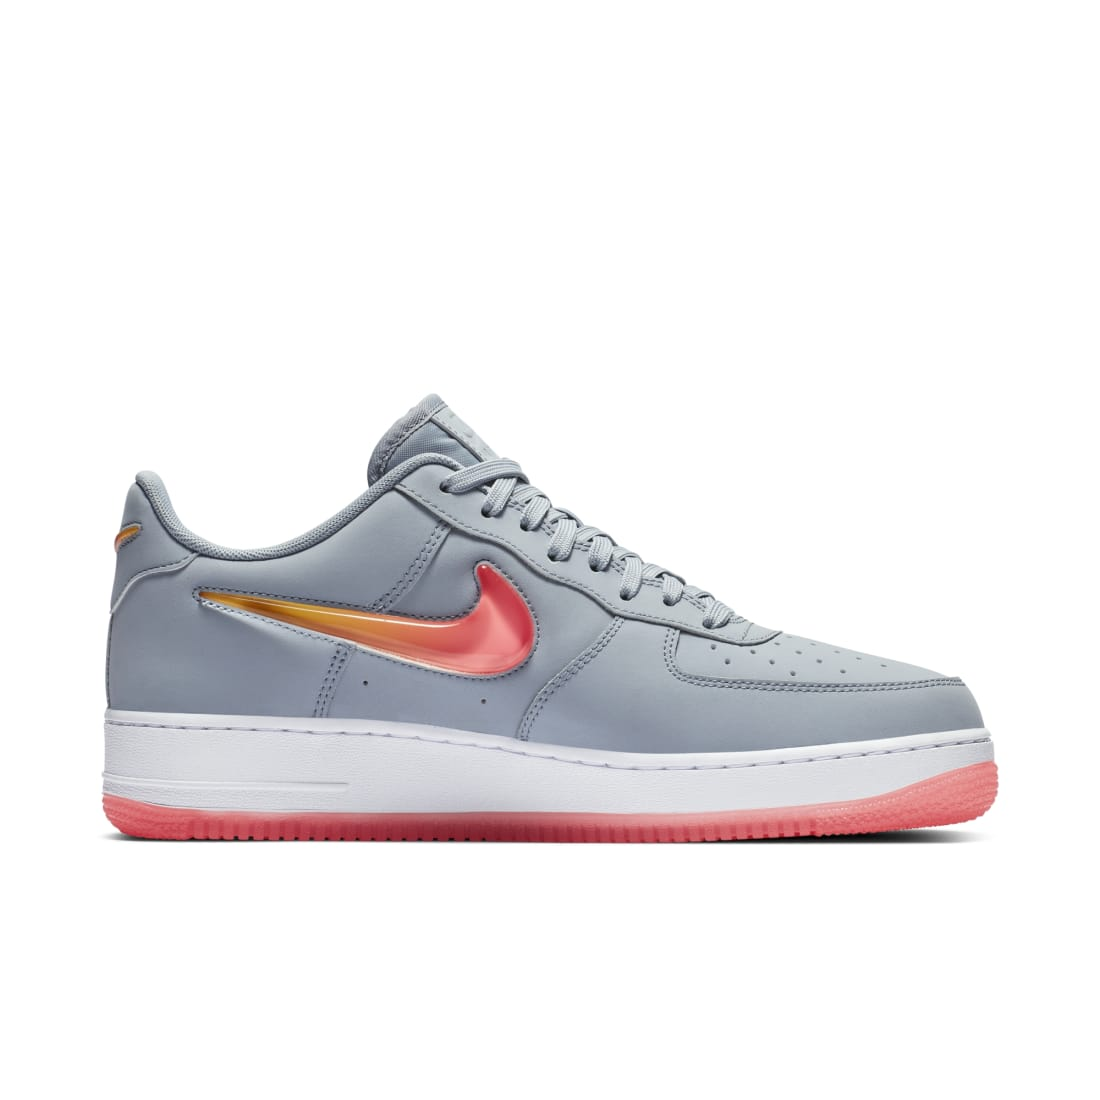 Nike Air Force 1 Low Jelly Jewel Obsidian Mist Nike Sole Collector